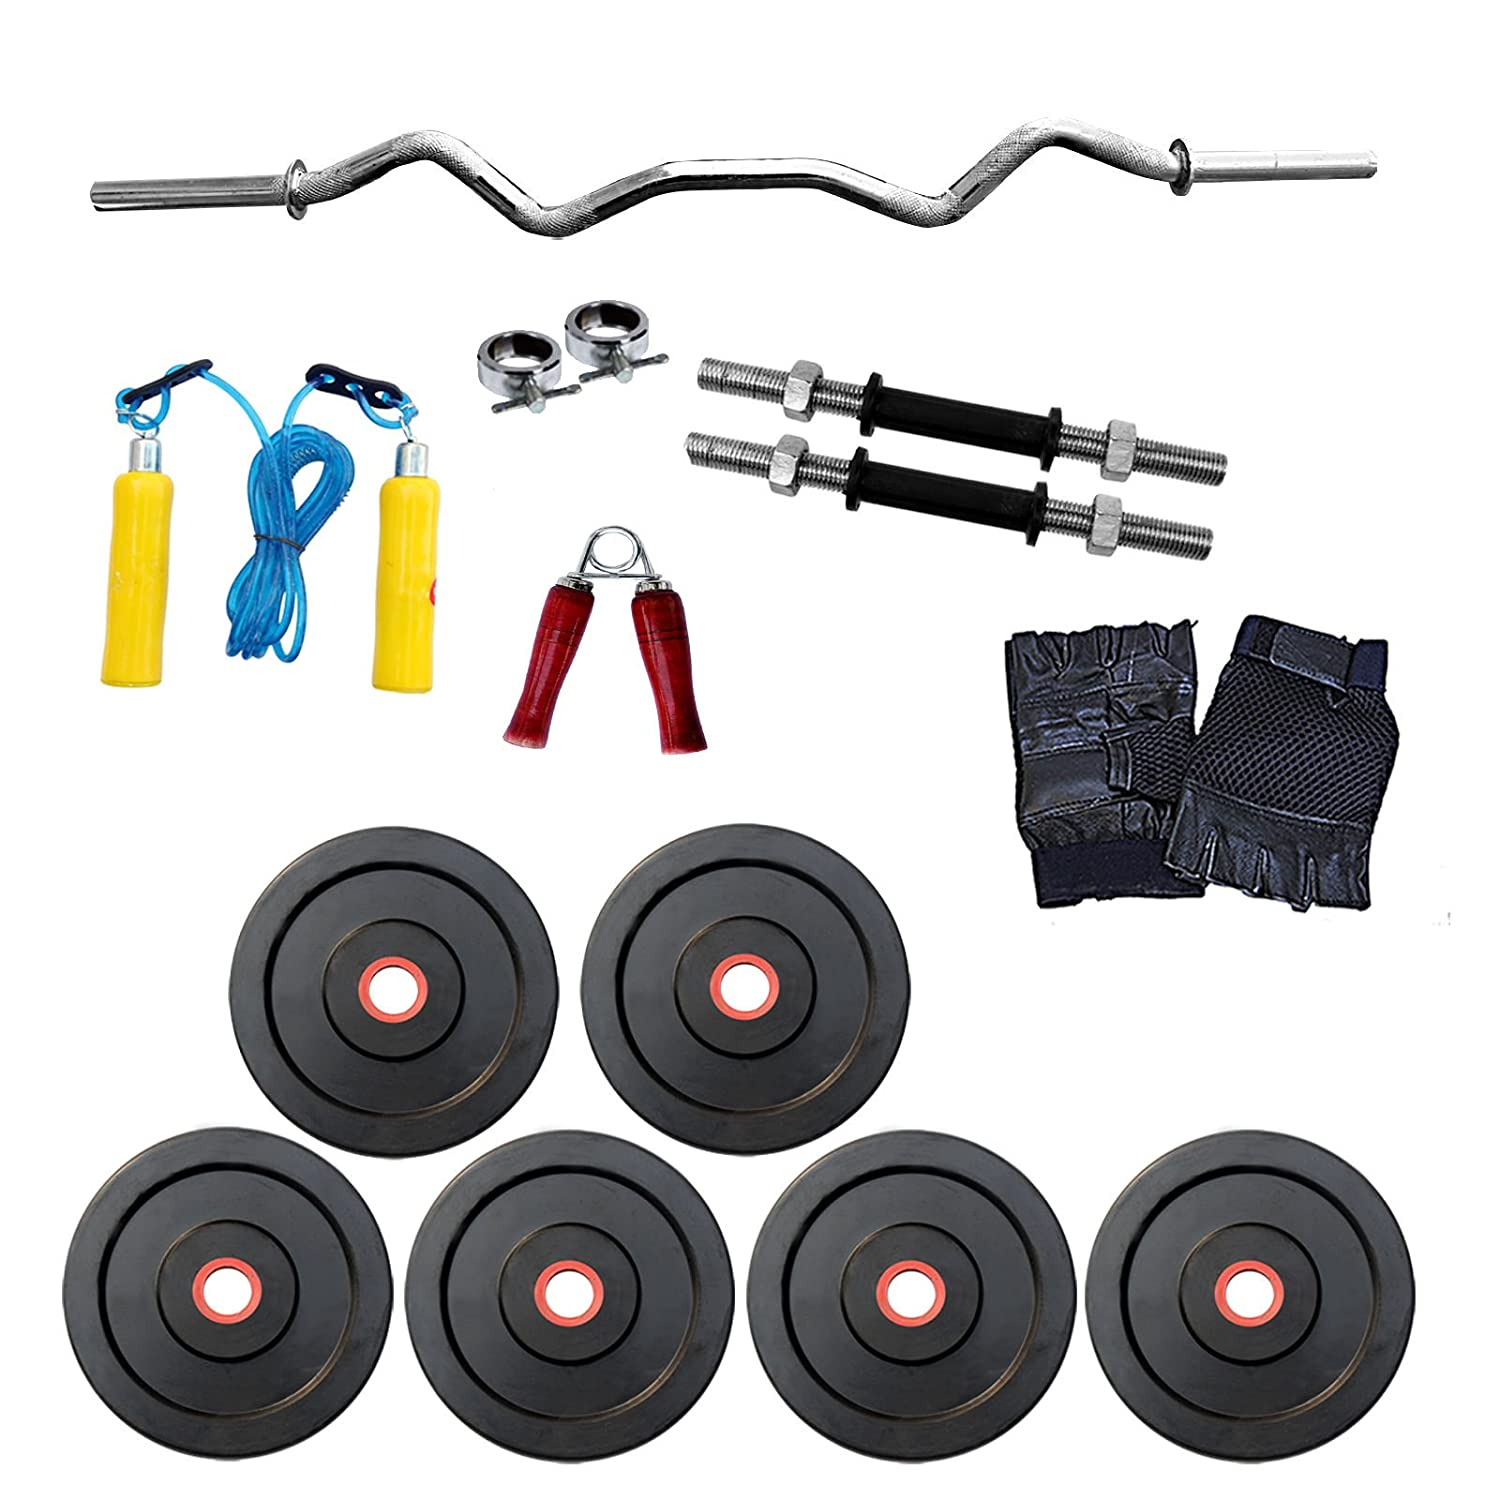 Body Maxx Home Gym Weight Lifting Pack 25 Kg With 3 Rods By Amazon @ Rs.1,348